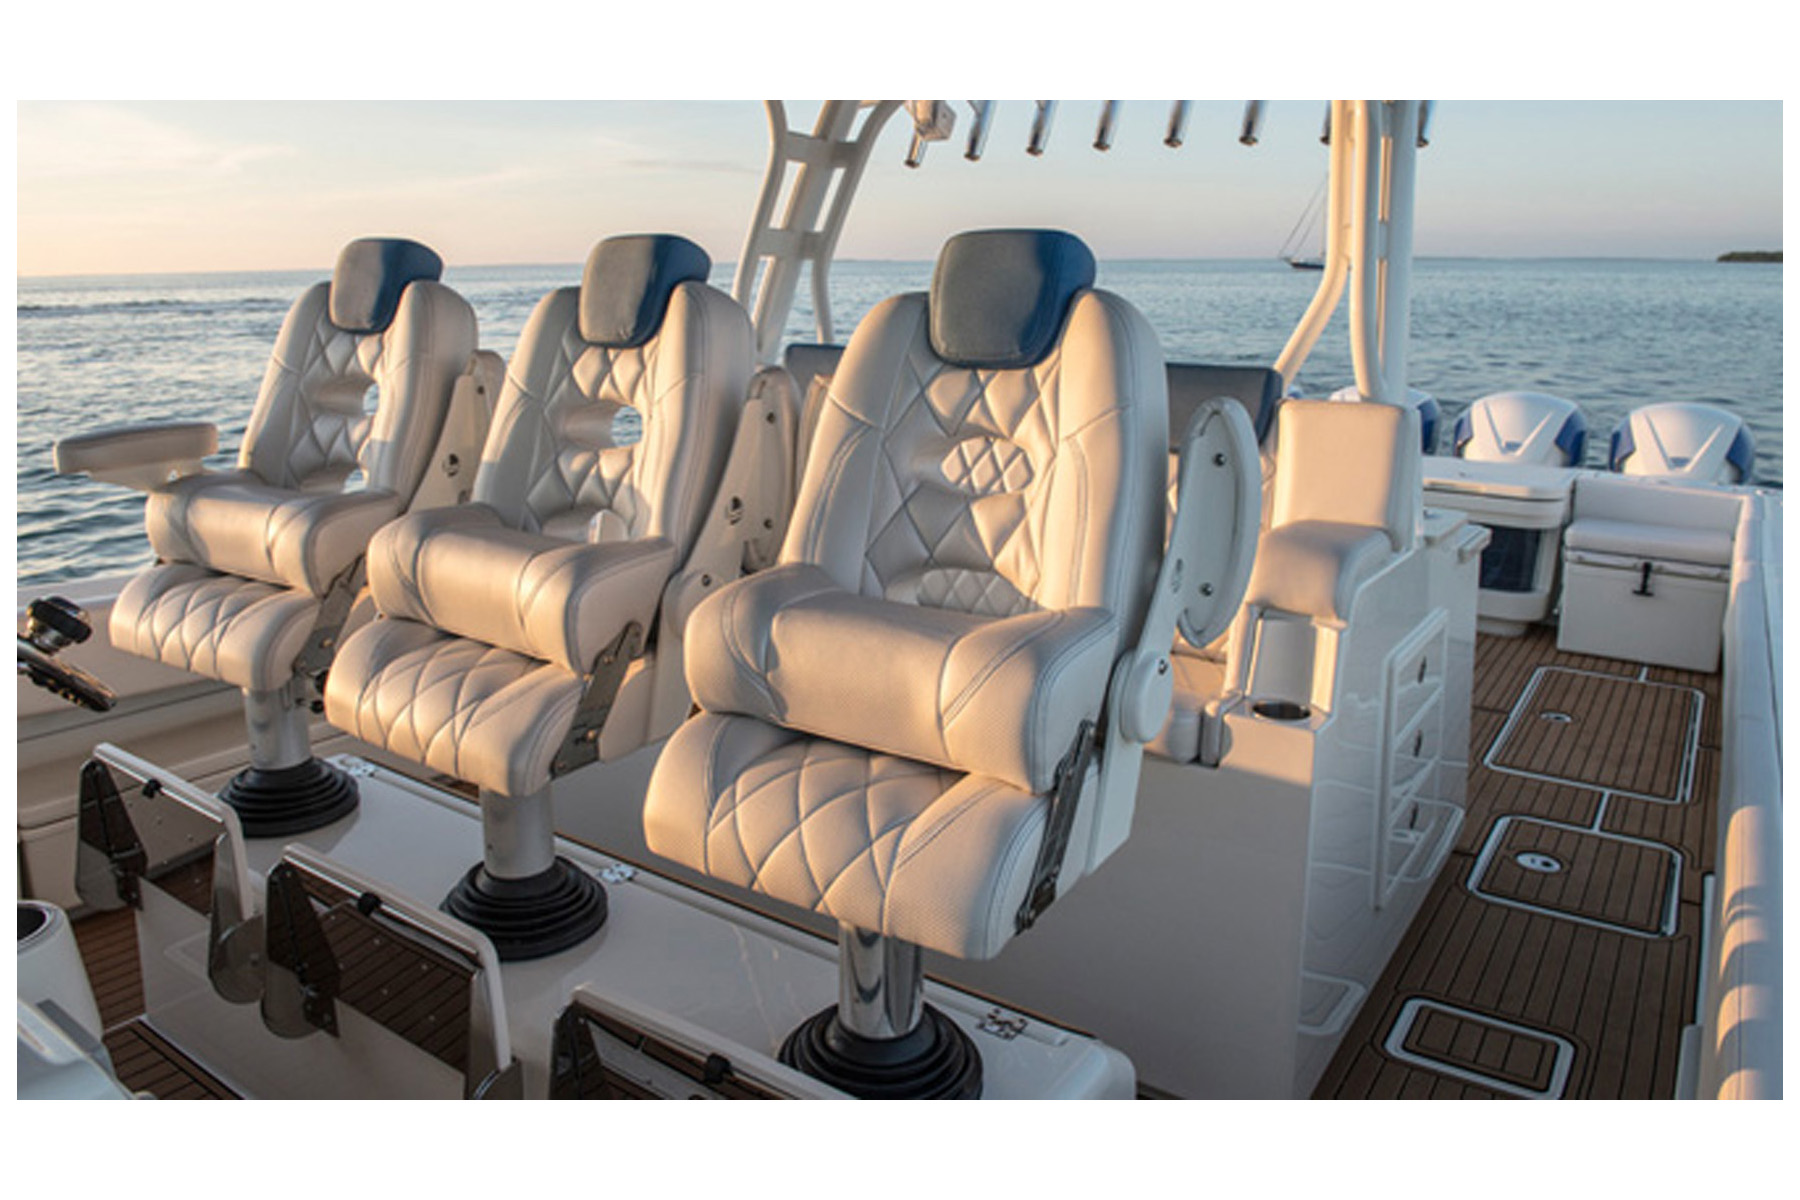 replacement captains chairs for boats folding chair covers party llebroc billfish triple with single needle diamond stitching gt2 bass boat seats